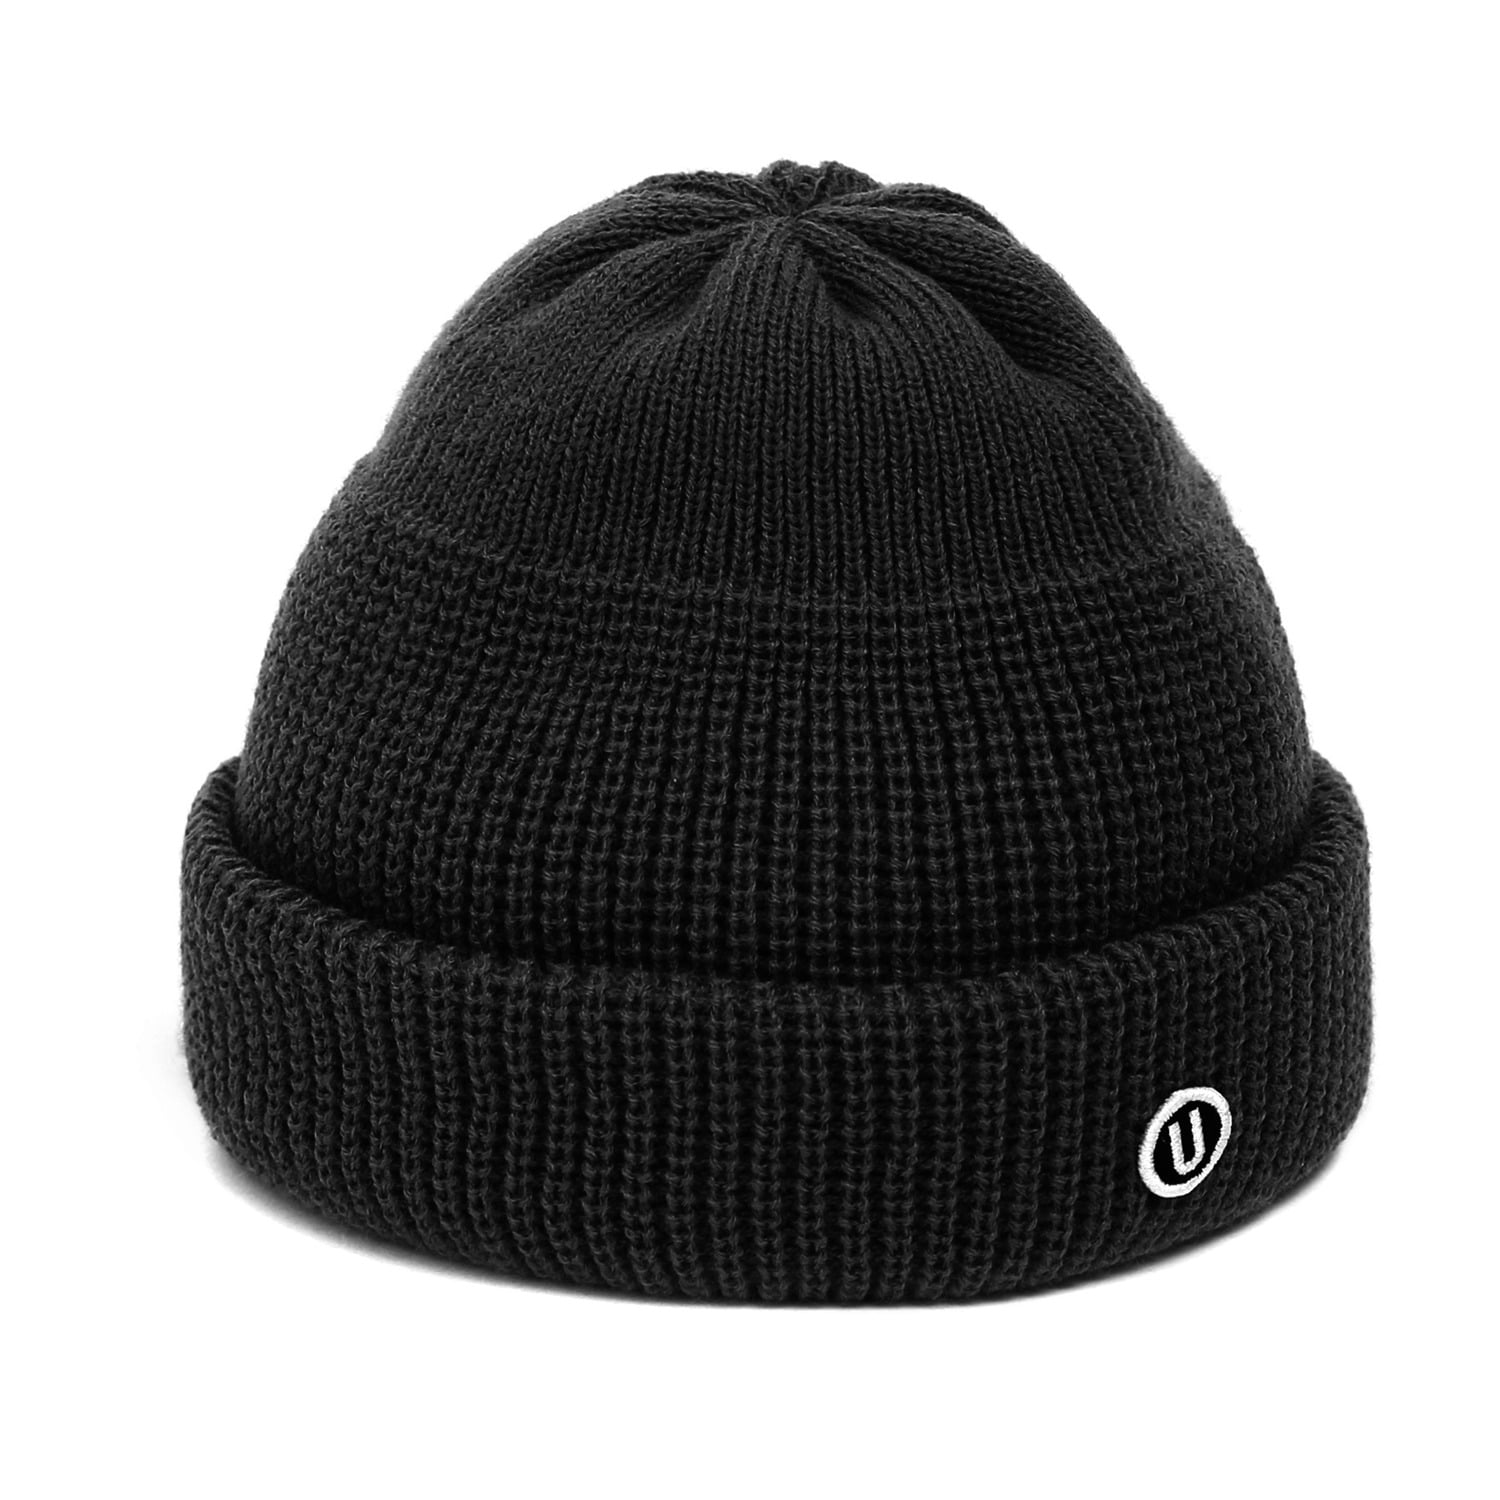 BEANIE / MONK FIT / U LOGO / M BLACK